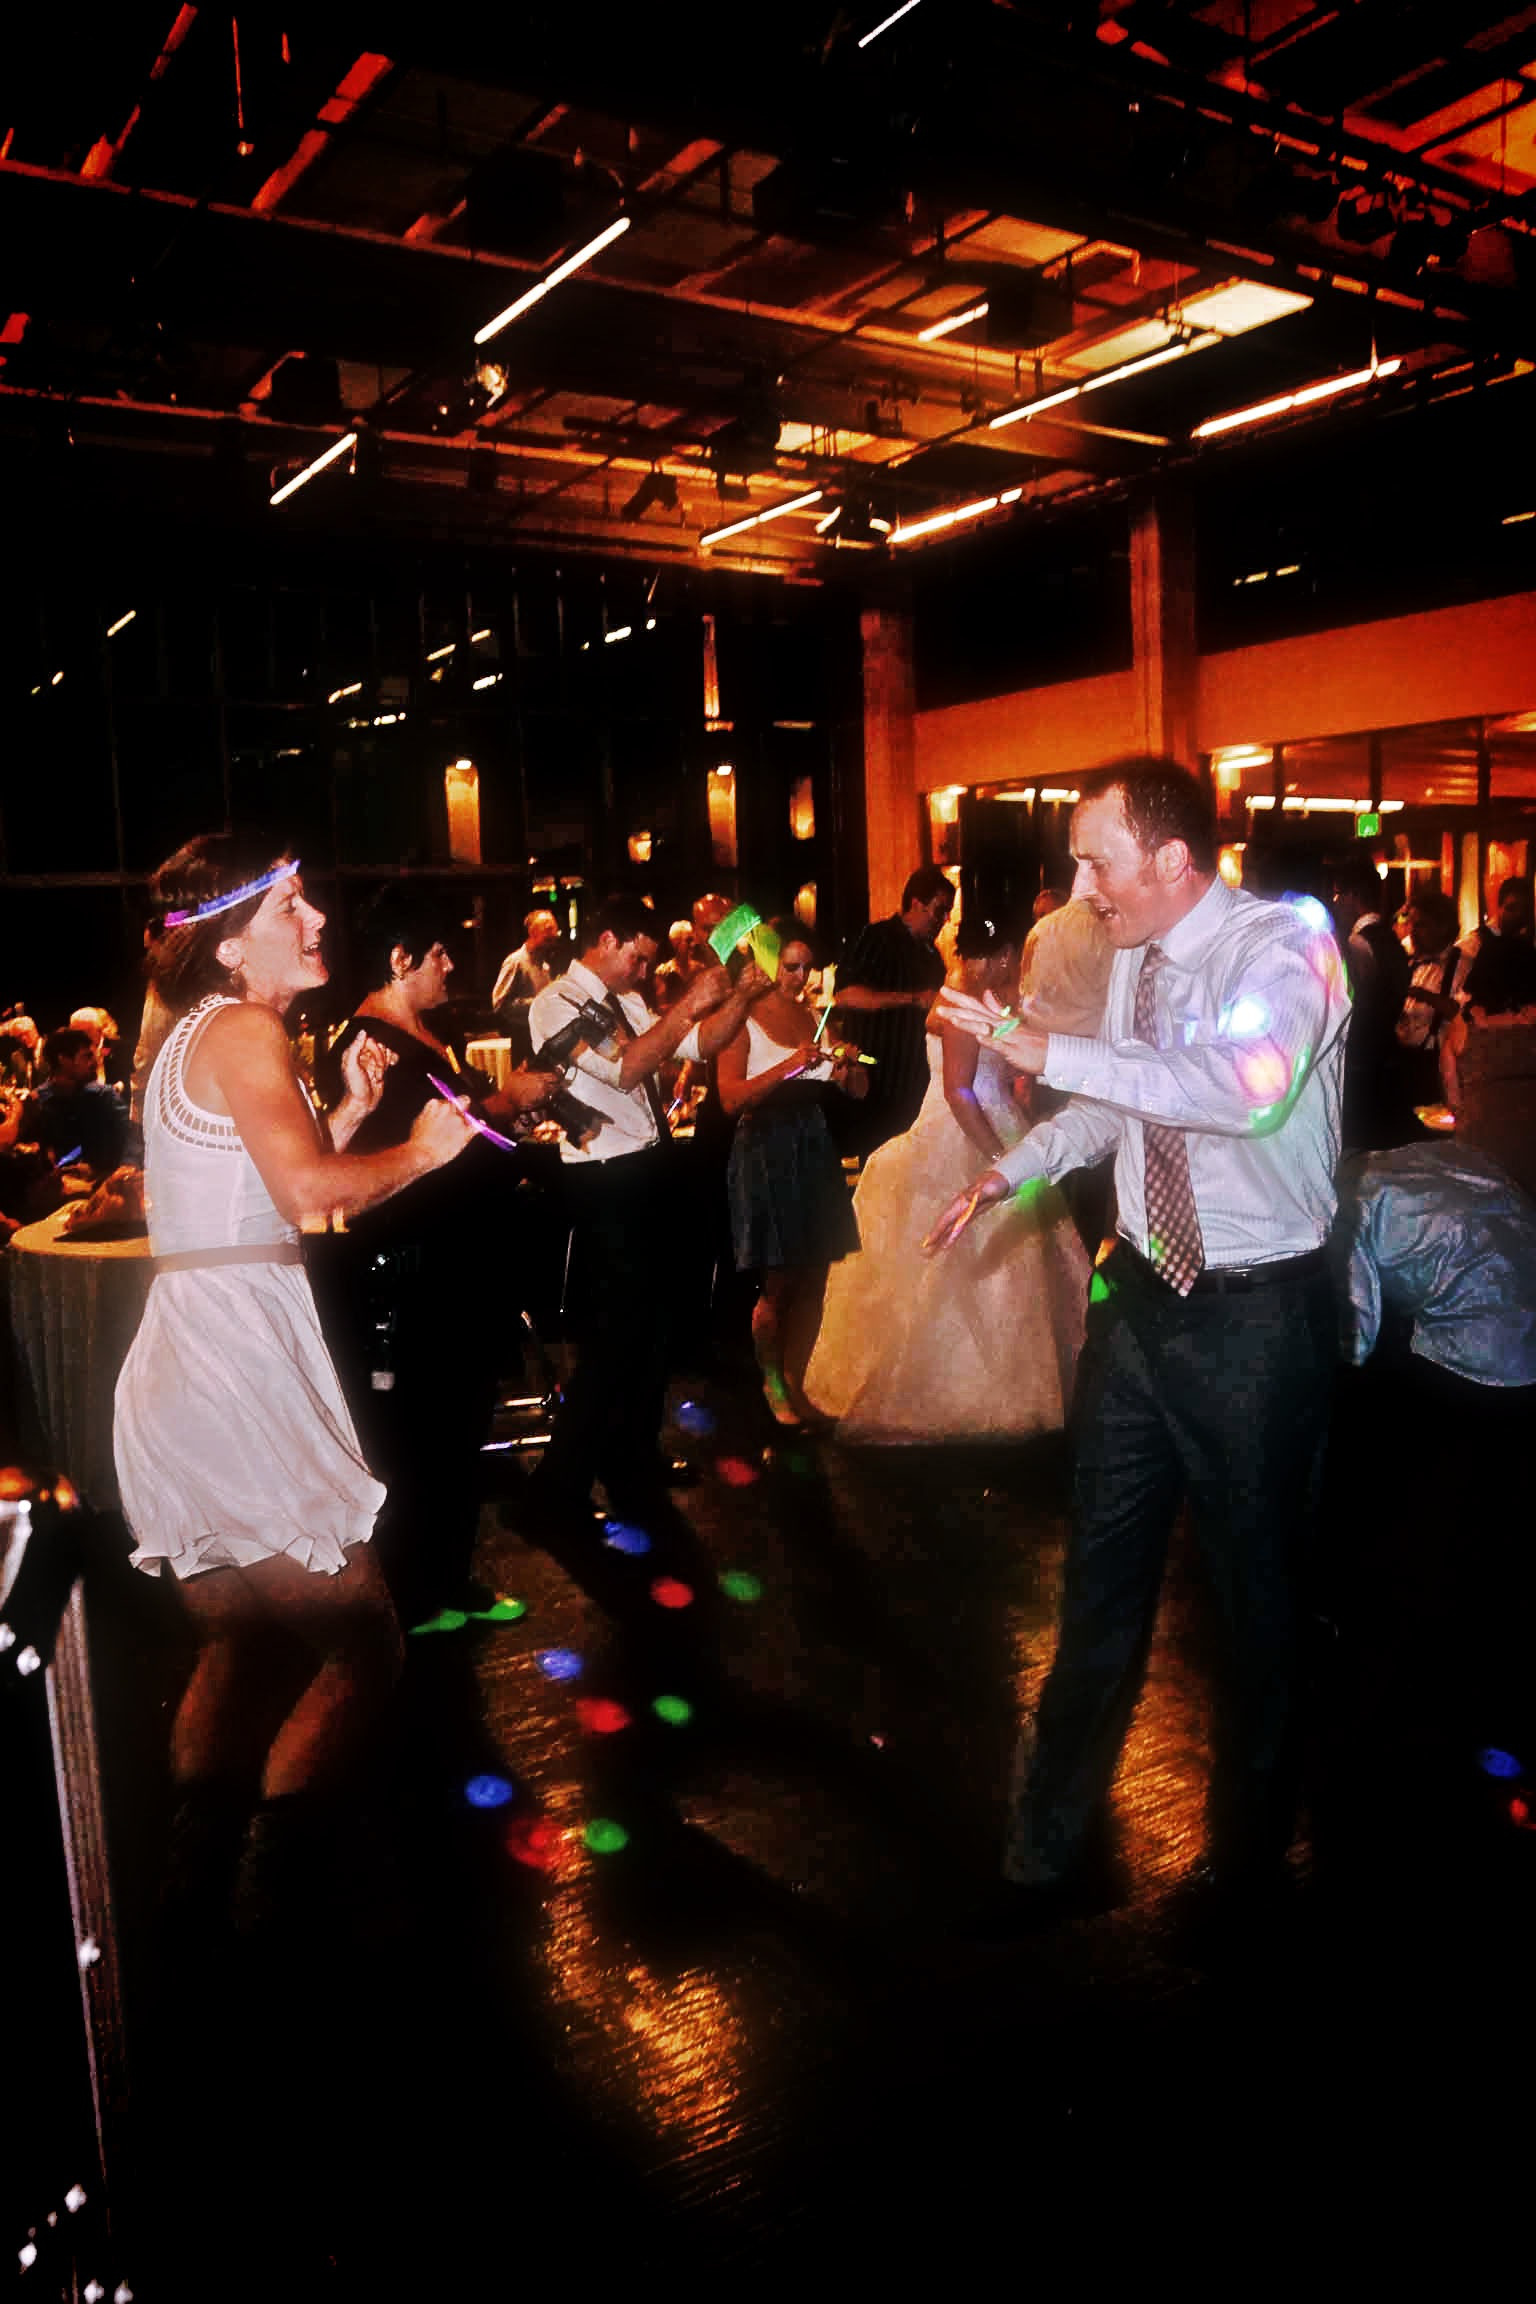 Electro wedding at Rosehill Community Center in Mukilteo ...